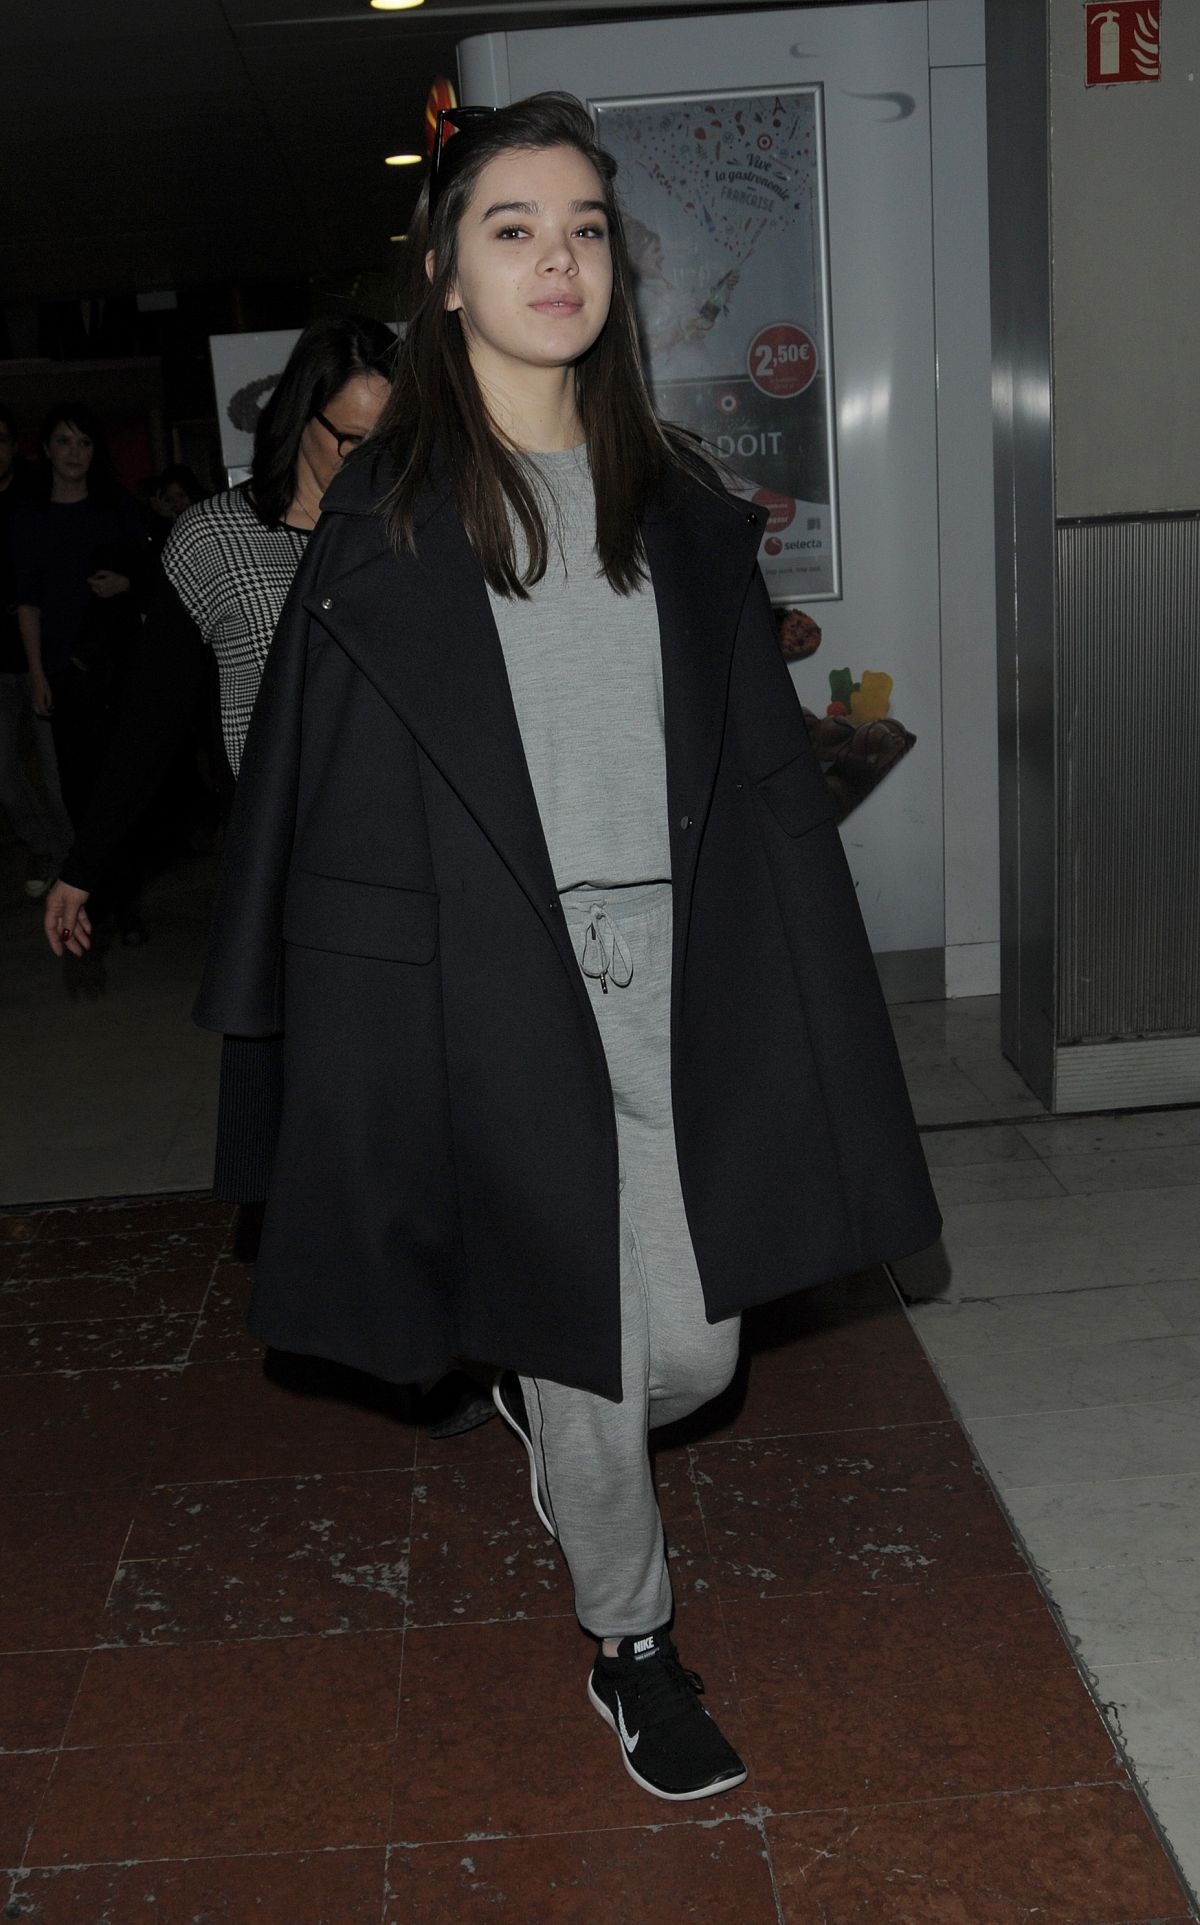 HAILEE STEINFELD at Charles De Gaulle Airport in France